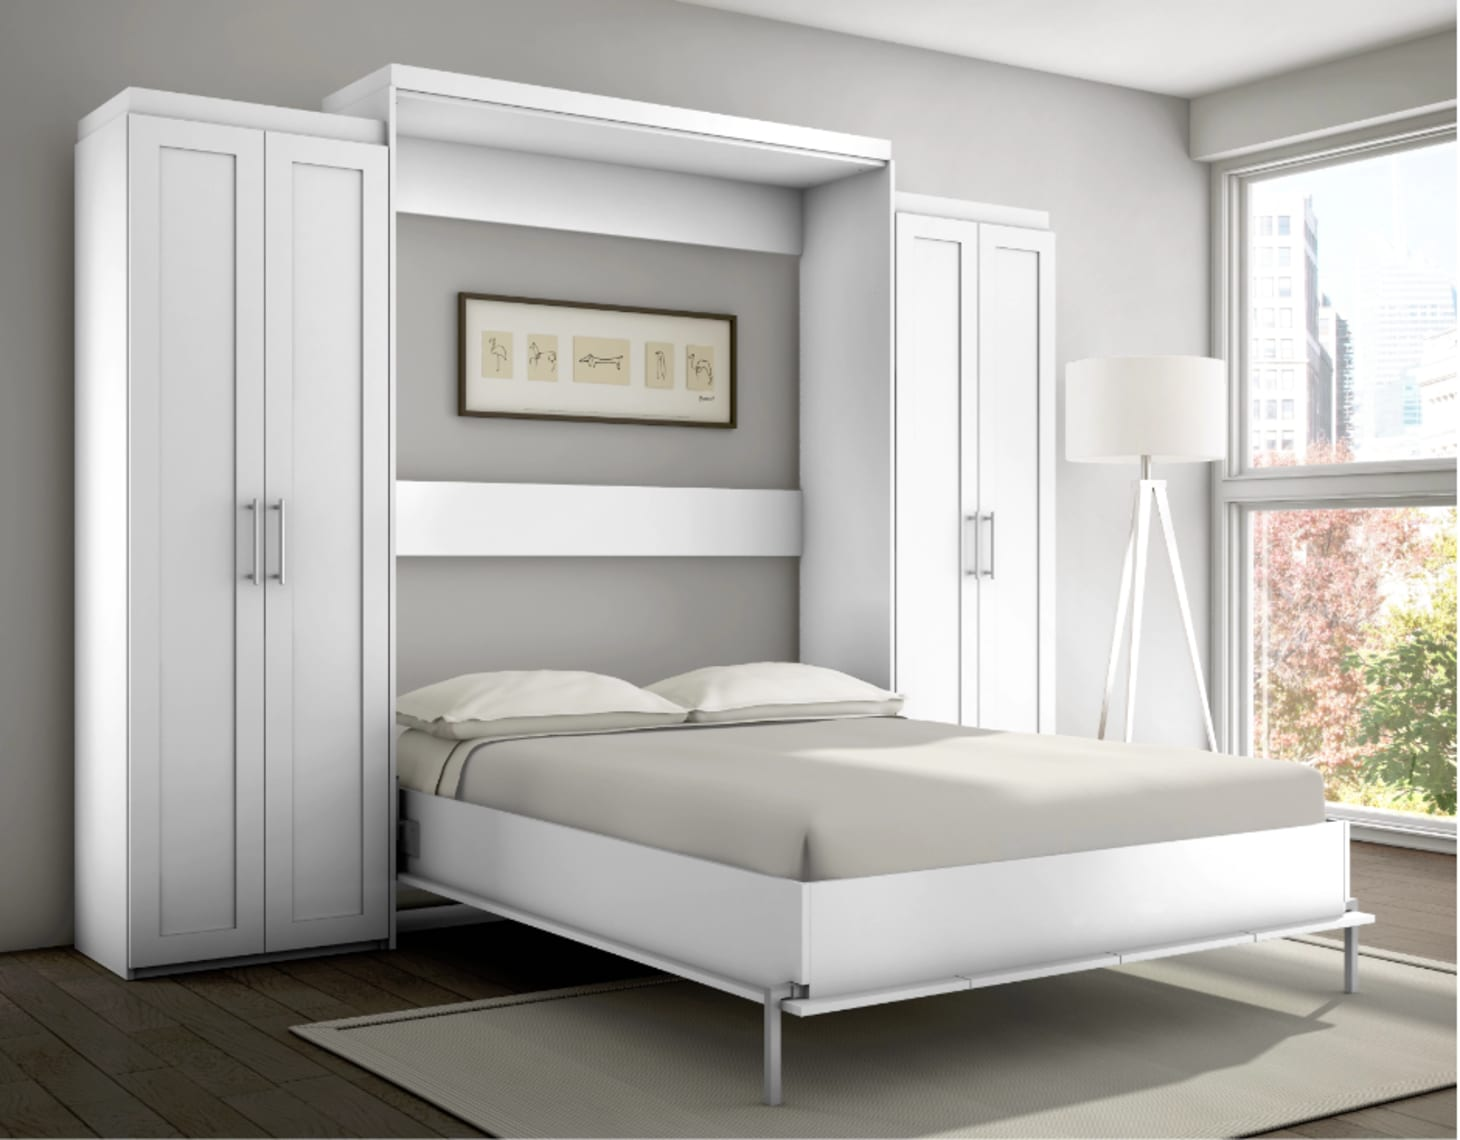 10 Murphy Beds & Wall Beds for Small Spaces | Apartment Therapy